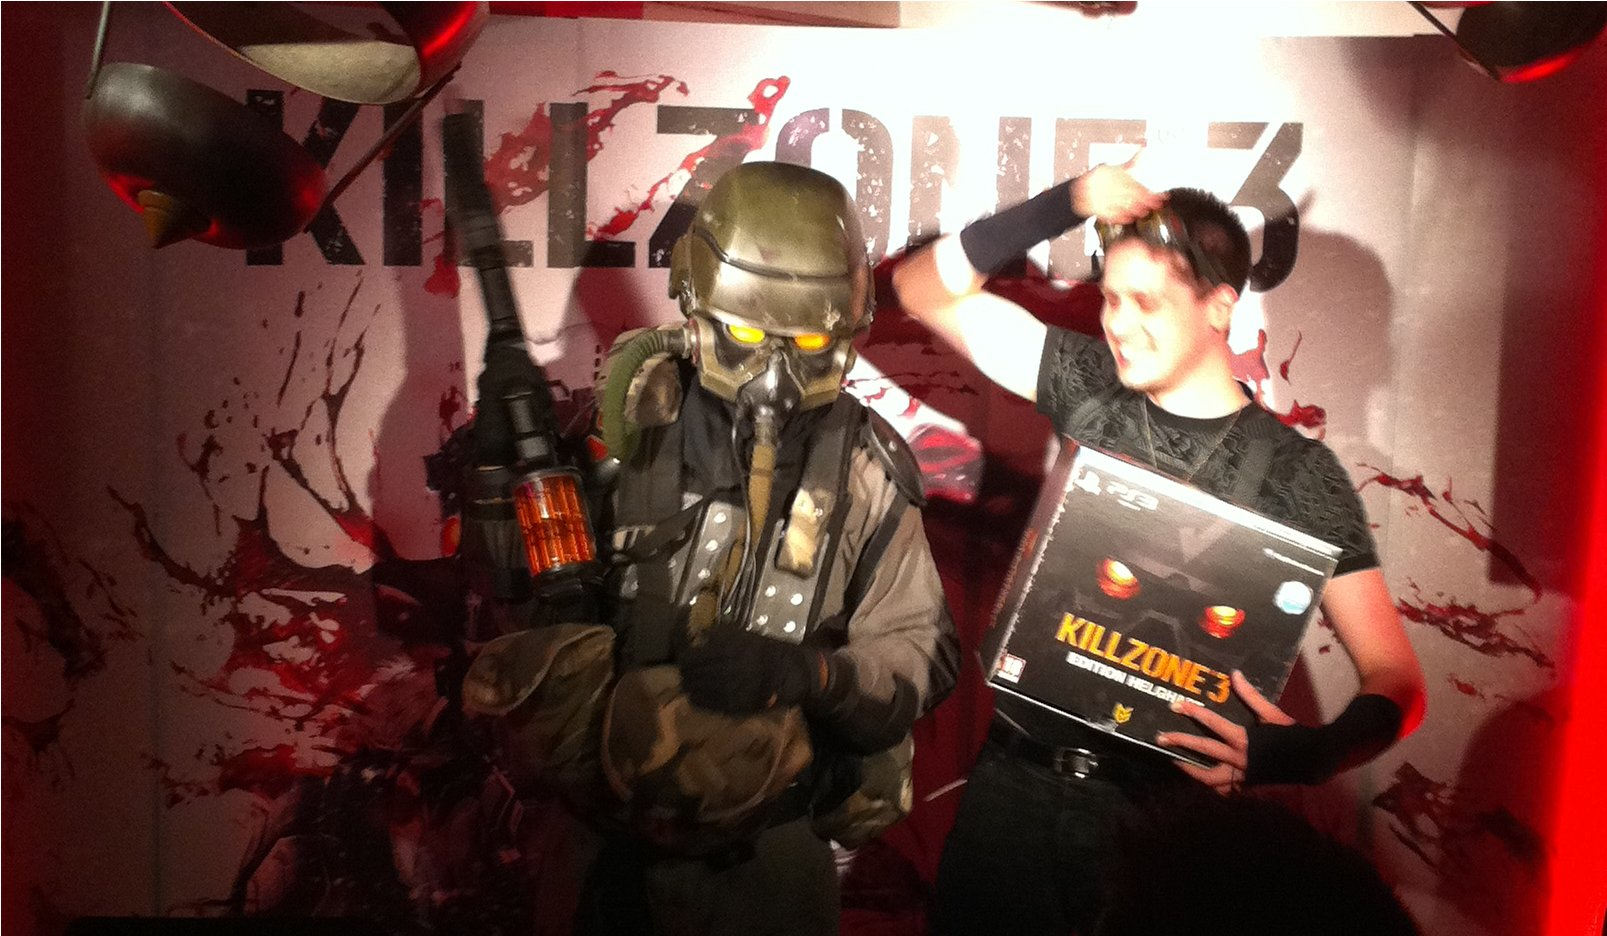 Event Killzone 3